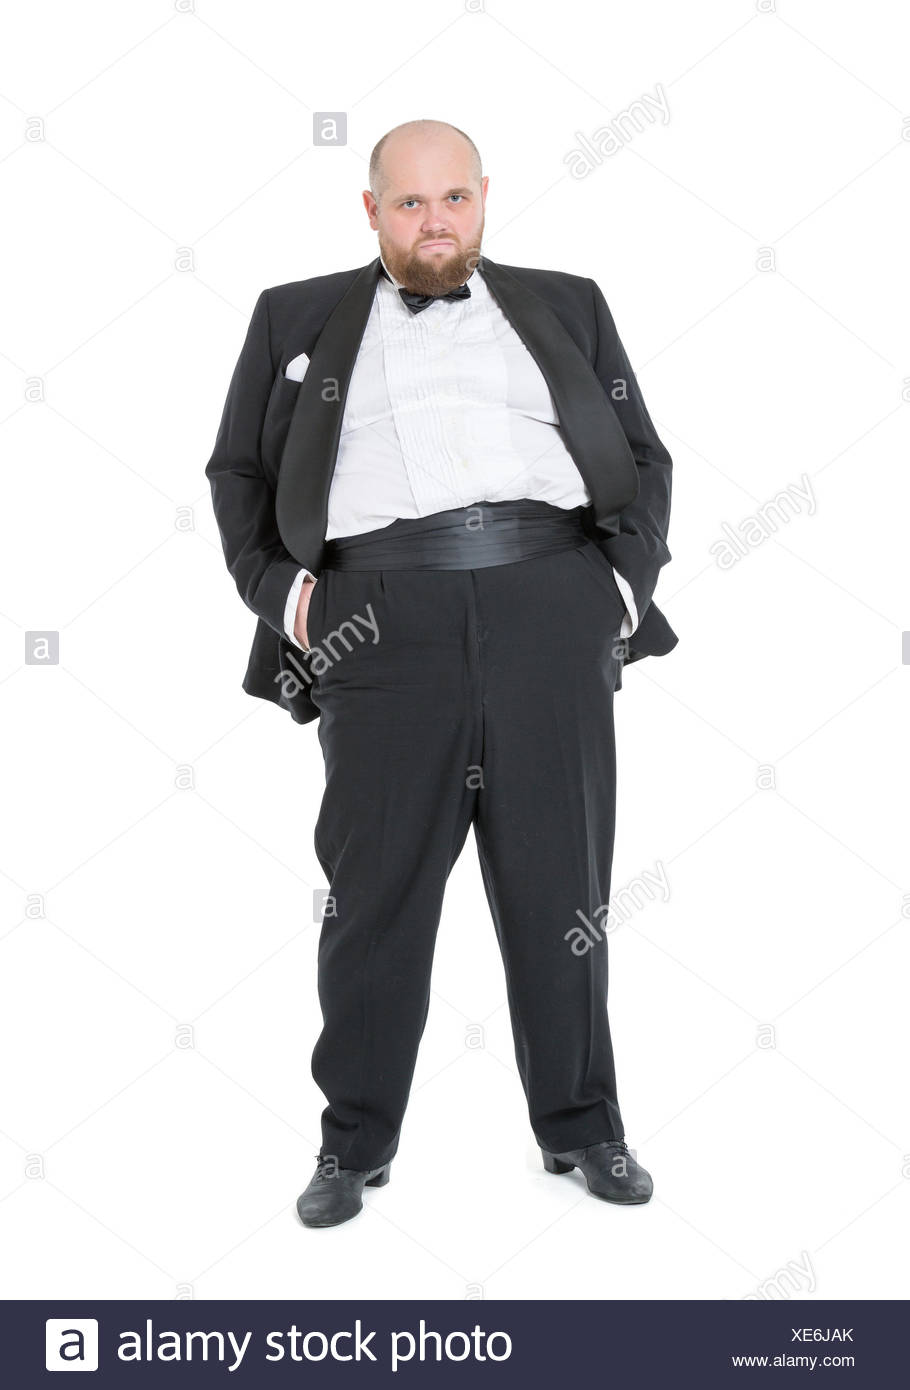 Jolly Fat Man in Tuxedo and Bow tie Shows Emotions - Stock Image